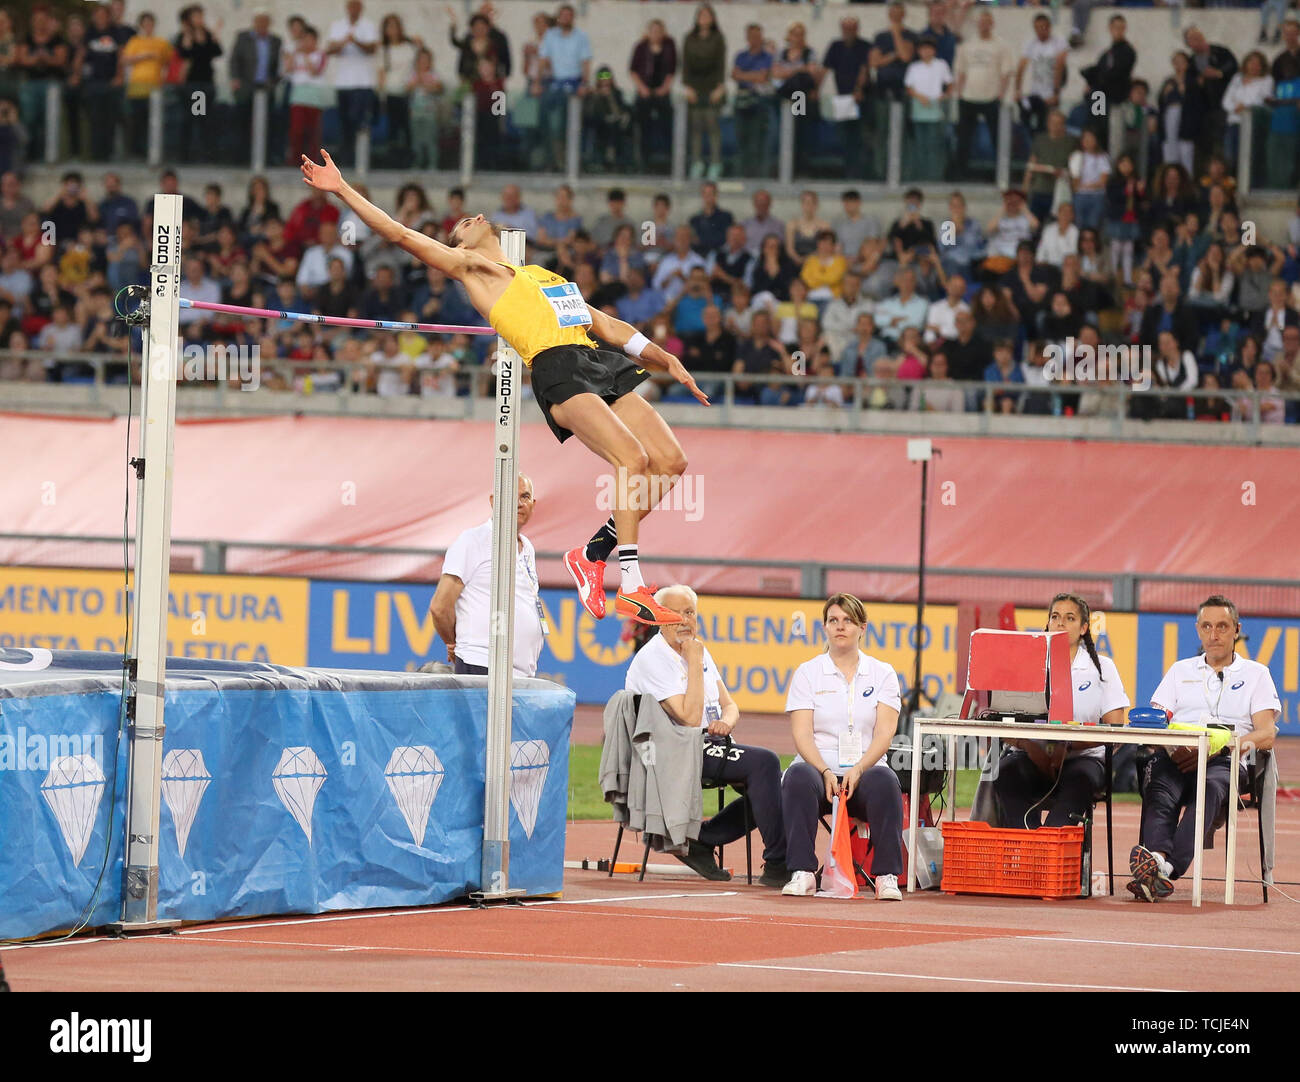 ROME, ITALY - JUN 06: Marco Tamberi of Italy competes in front of his crowd  in the Men High Jump event during the IAAF Diamond League 2019 Golden Gala  Stock Photo - Alamy